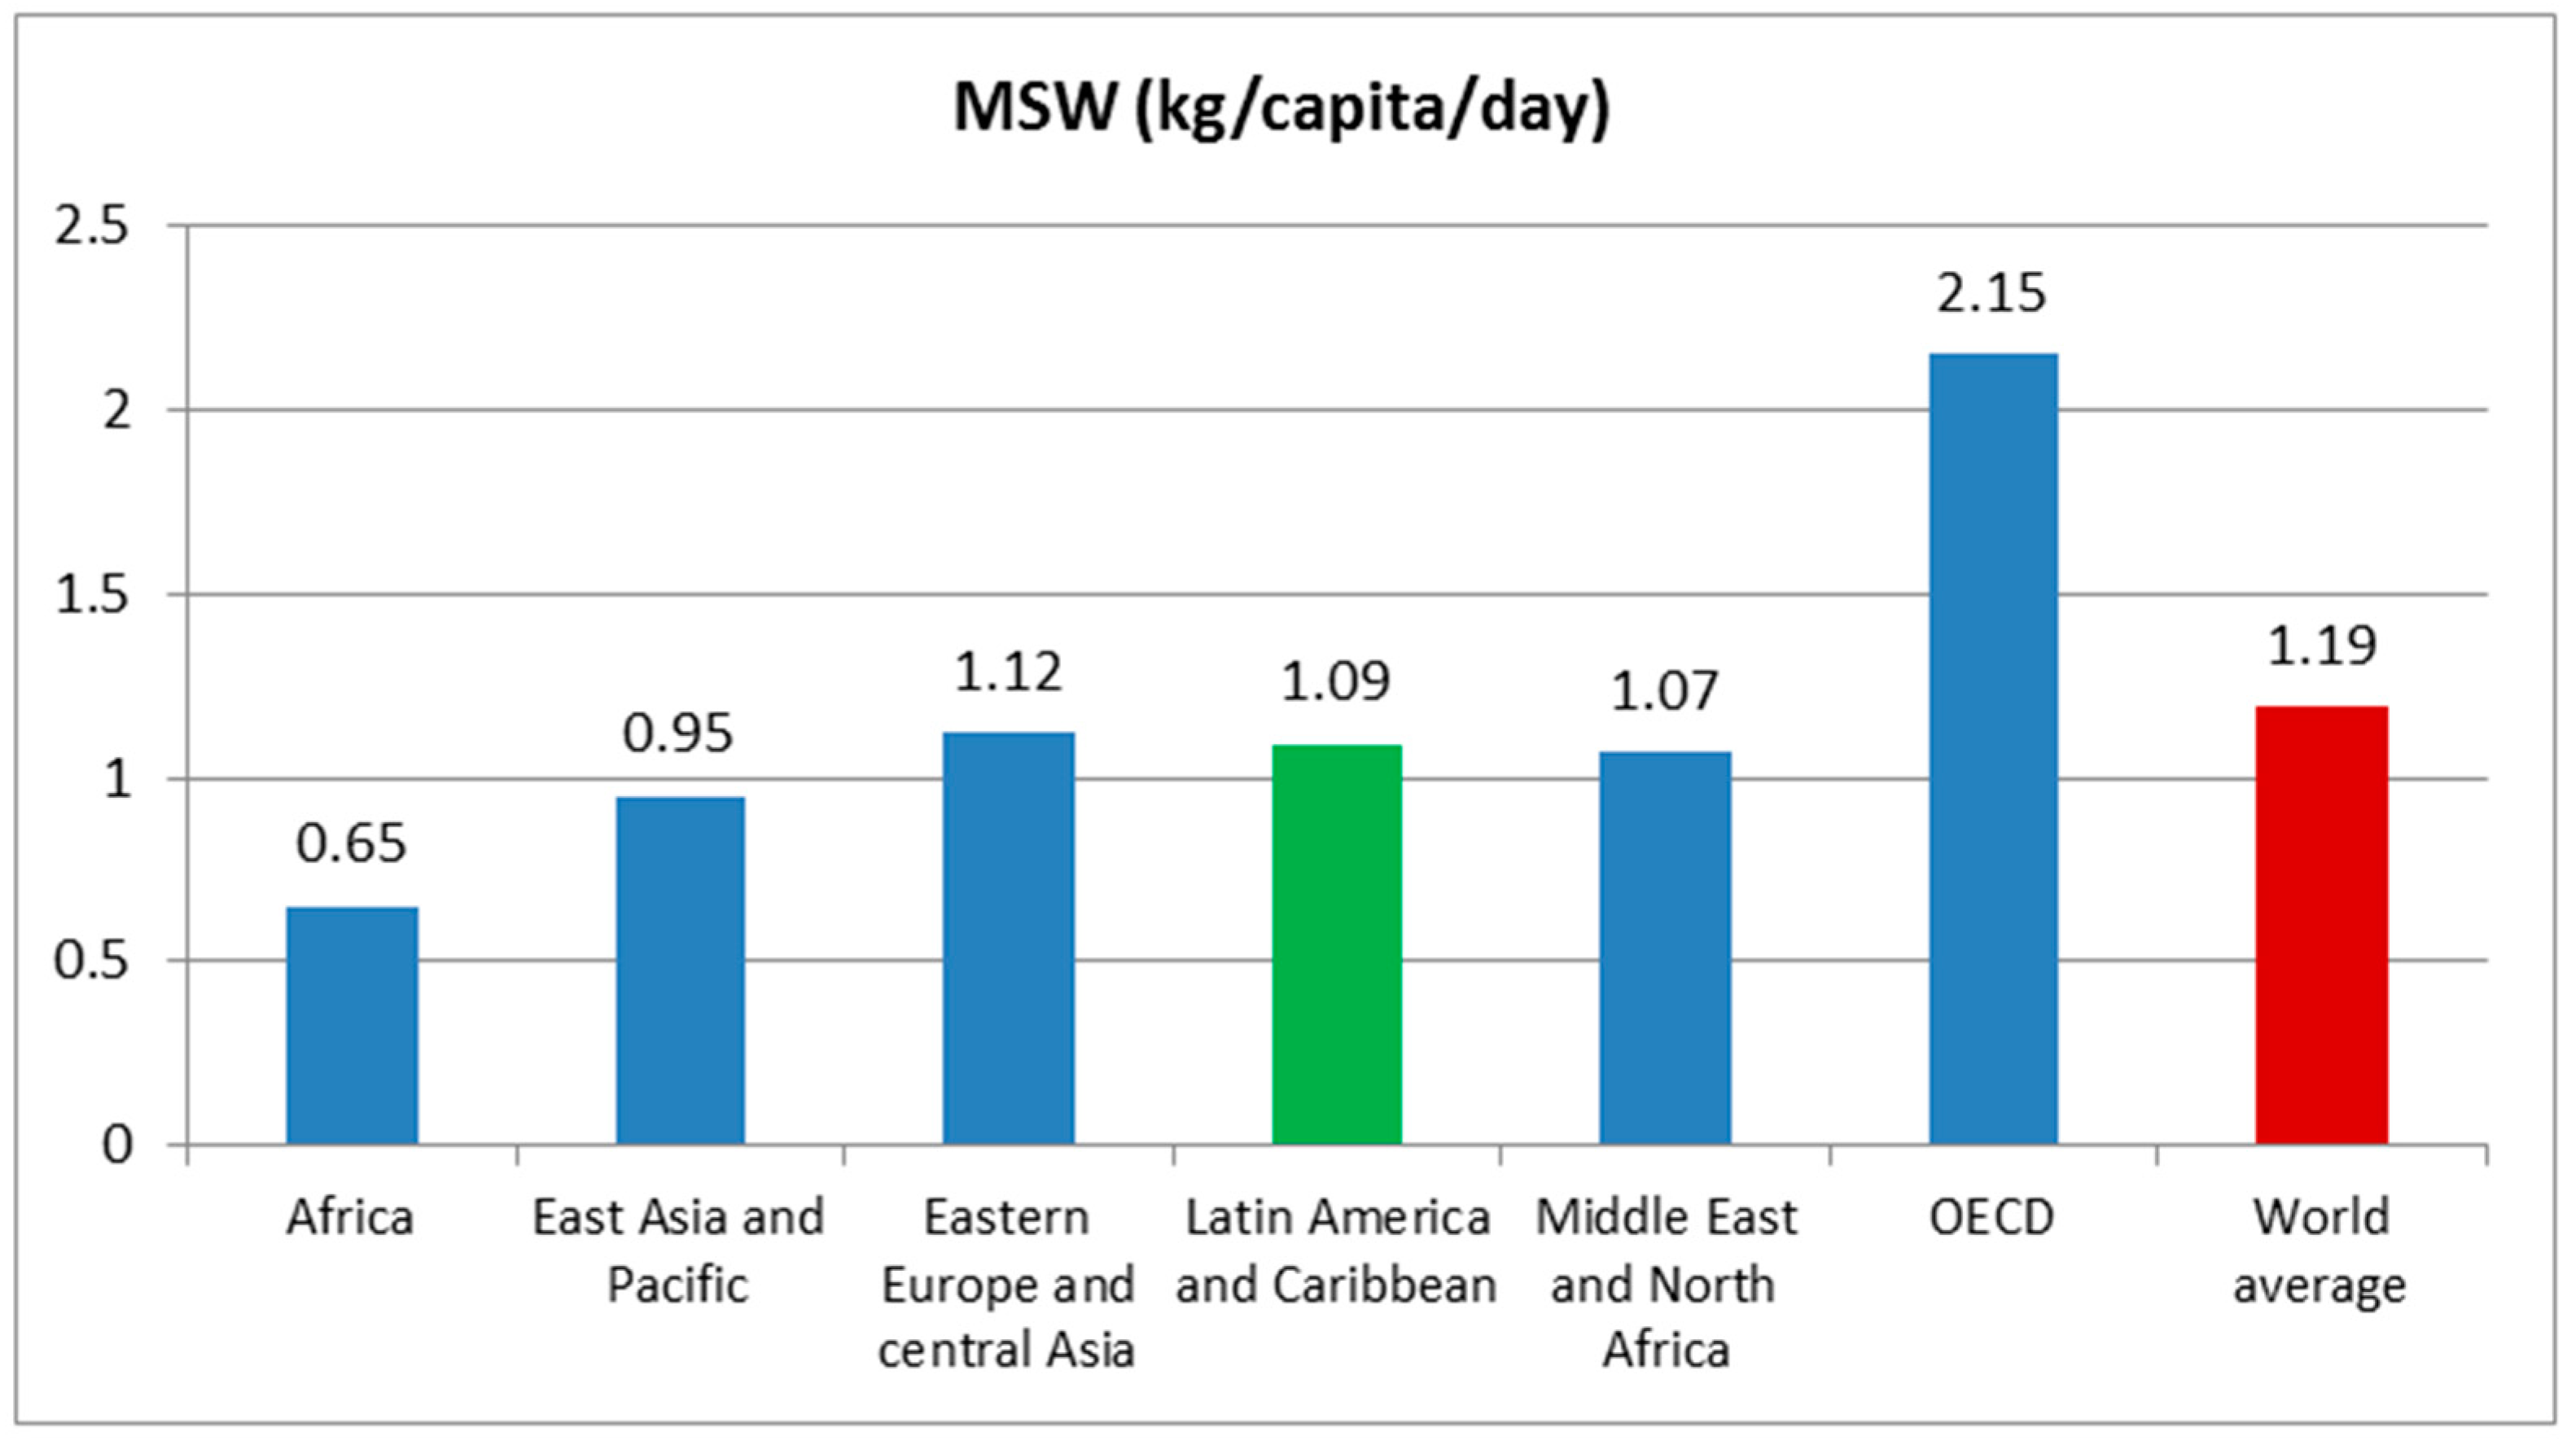 Recycling Free Full Text Municipal Solid Waste Management In Latin America And The Caribbean Issues And Potential Solutions From The Governance Perspective